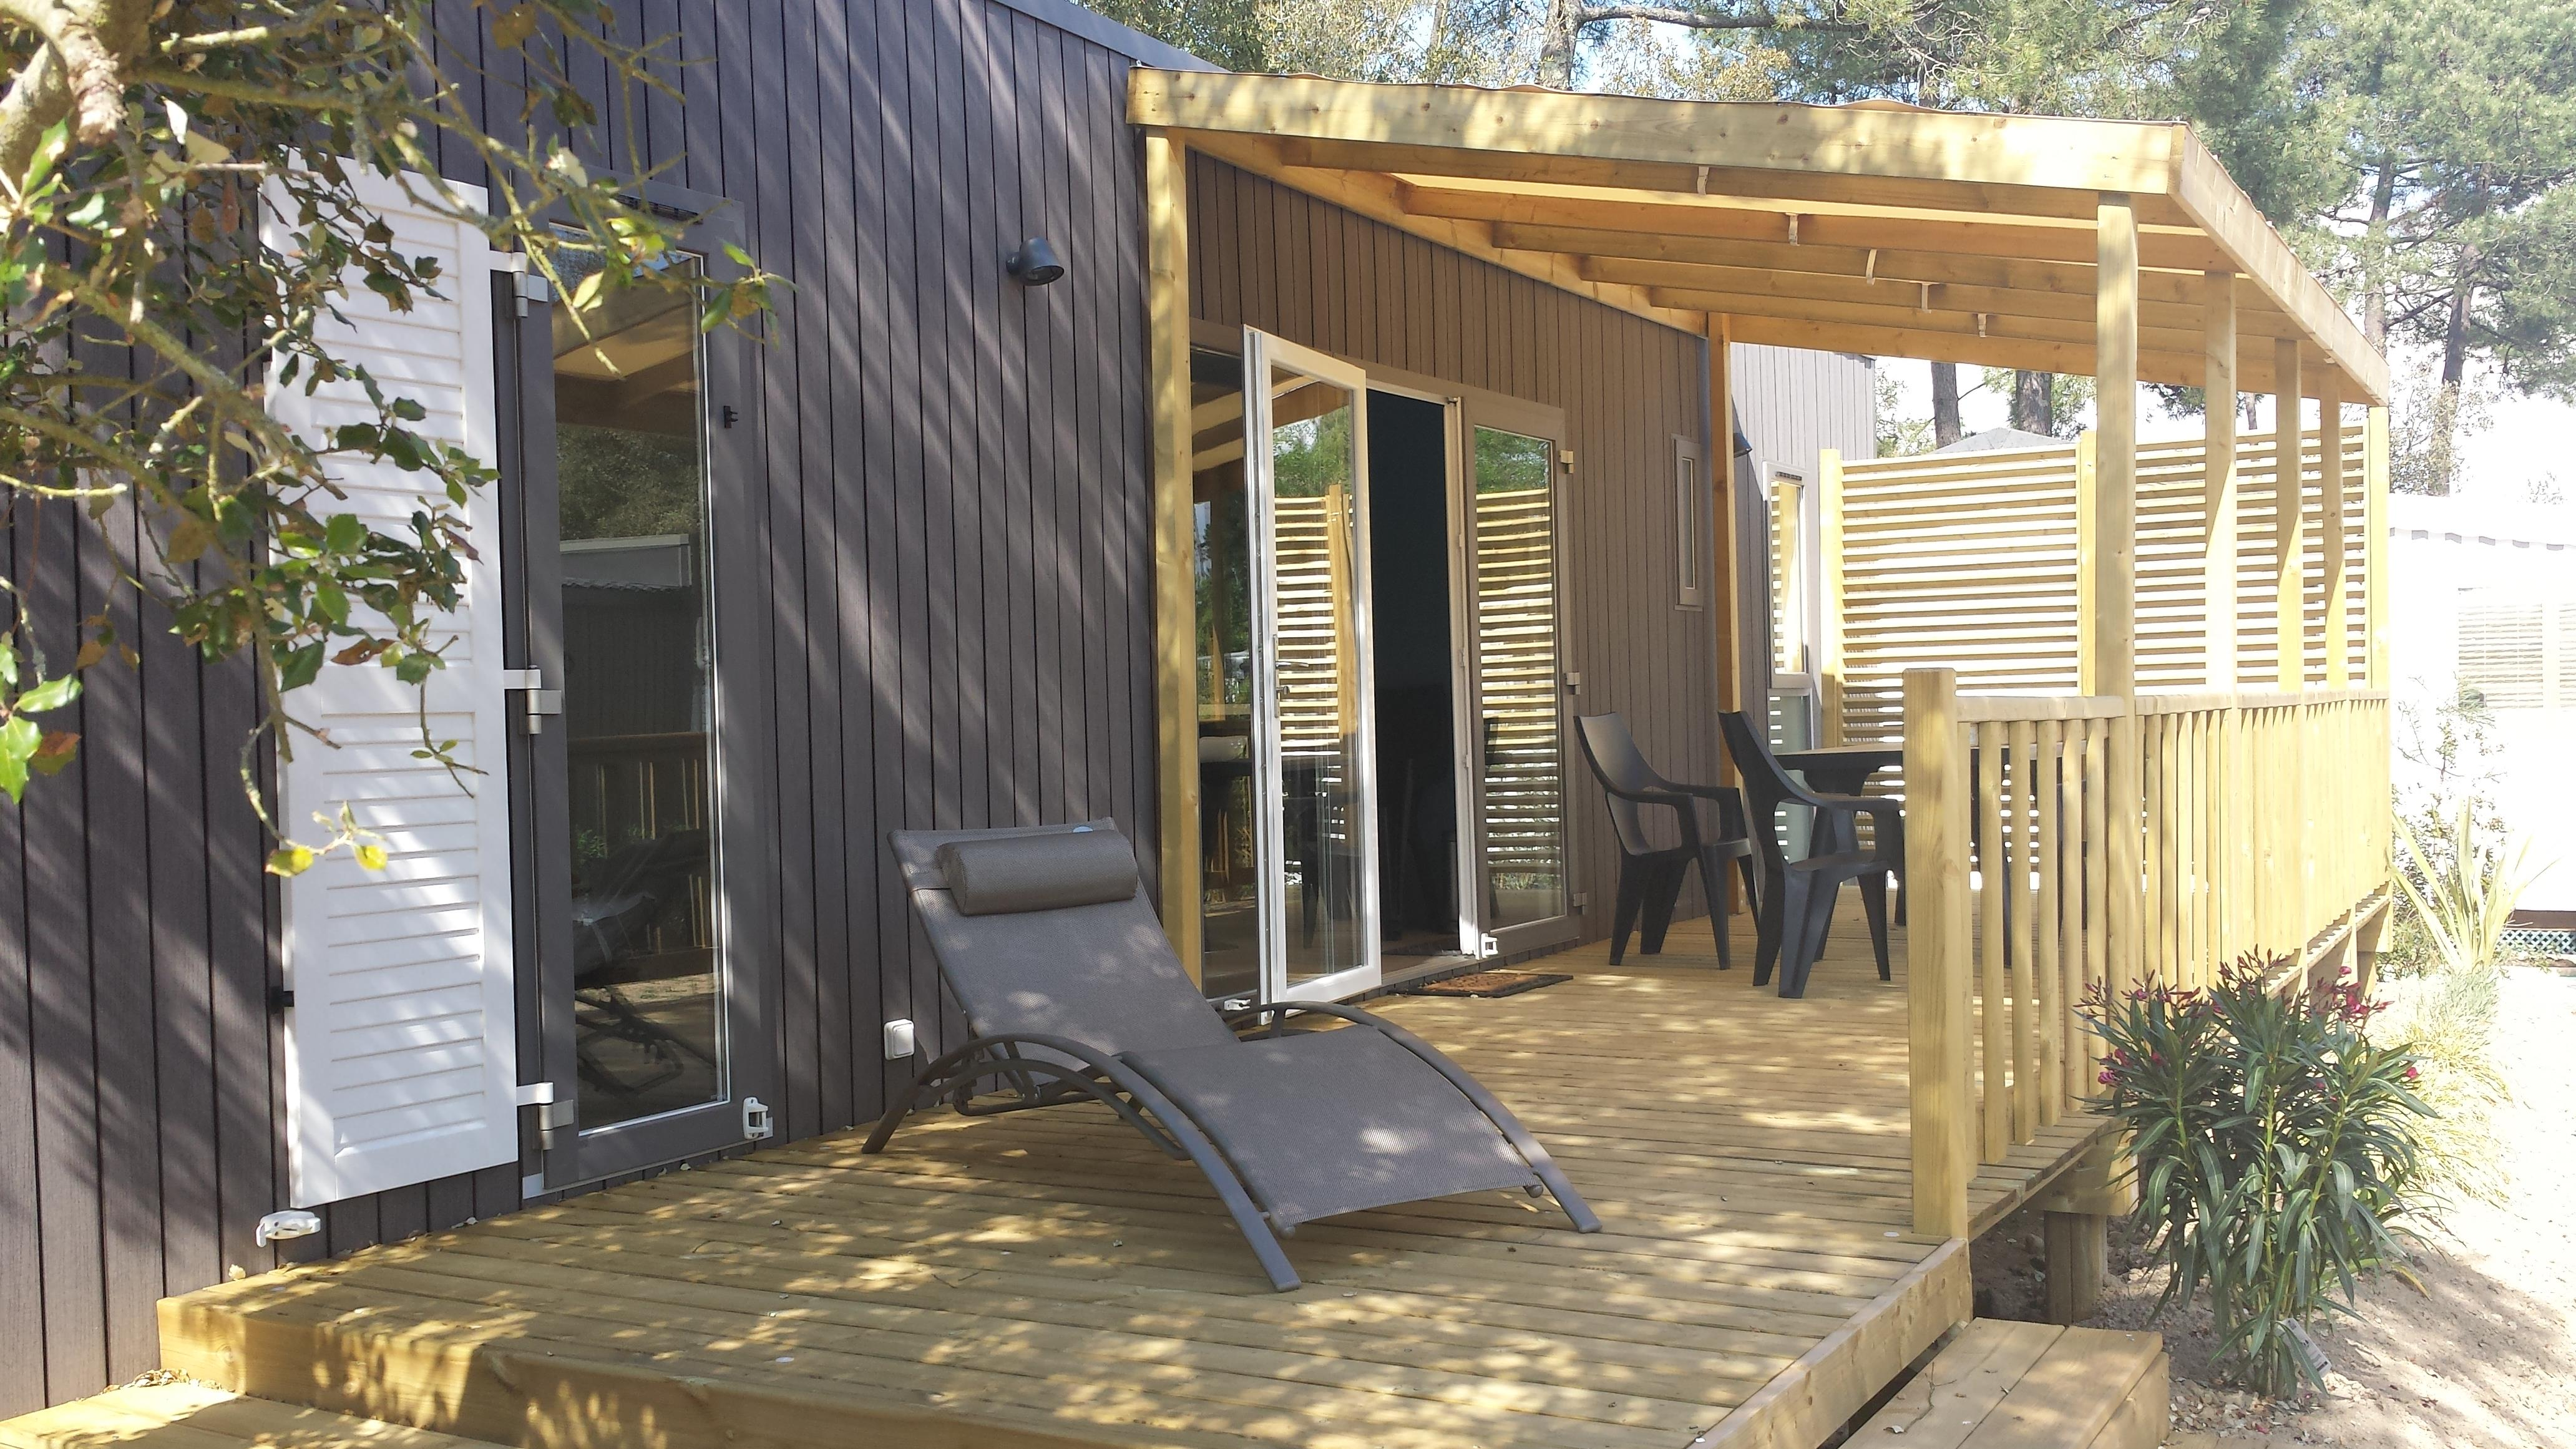 Location - Vip 3 Chambres 38M² - Pack-Vip Inclus (Linge,Tv,Wifi...) - Camping LES GENETS